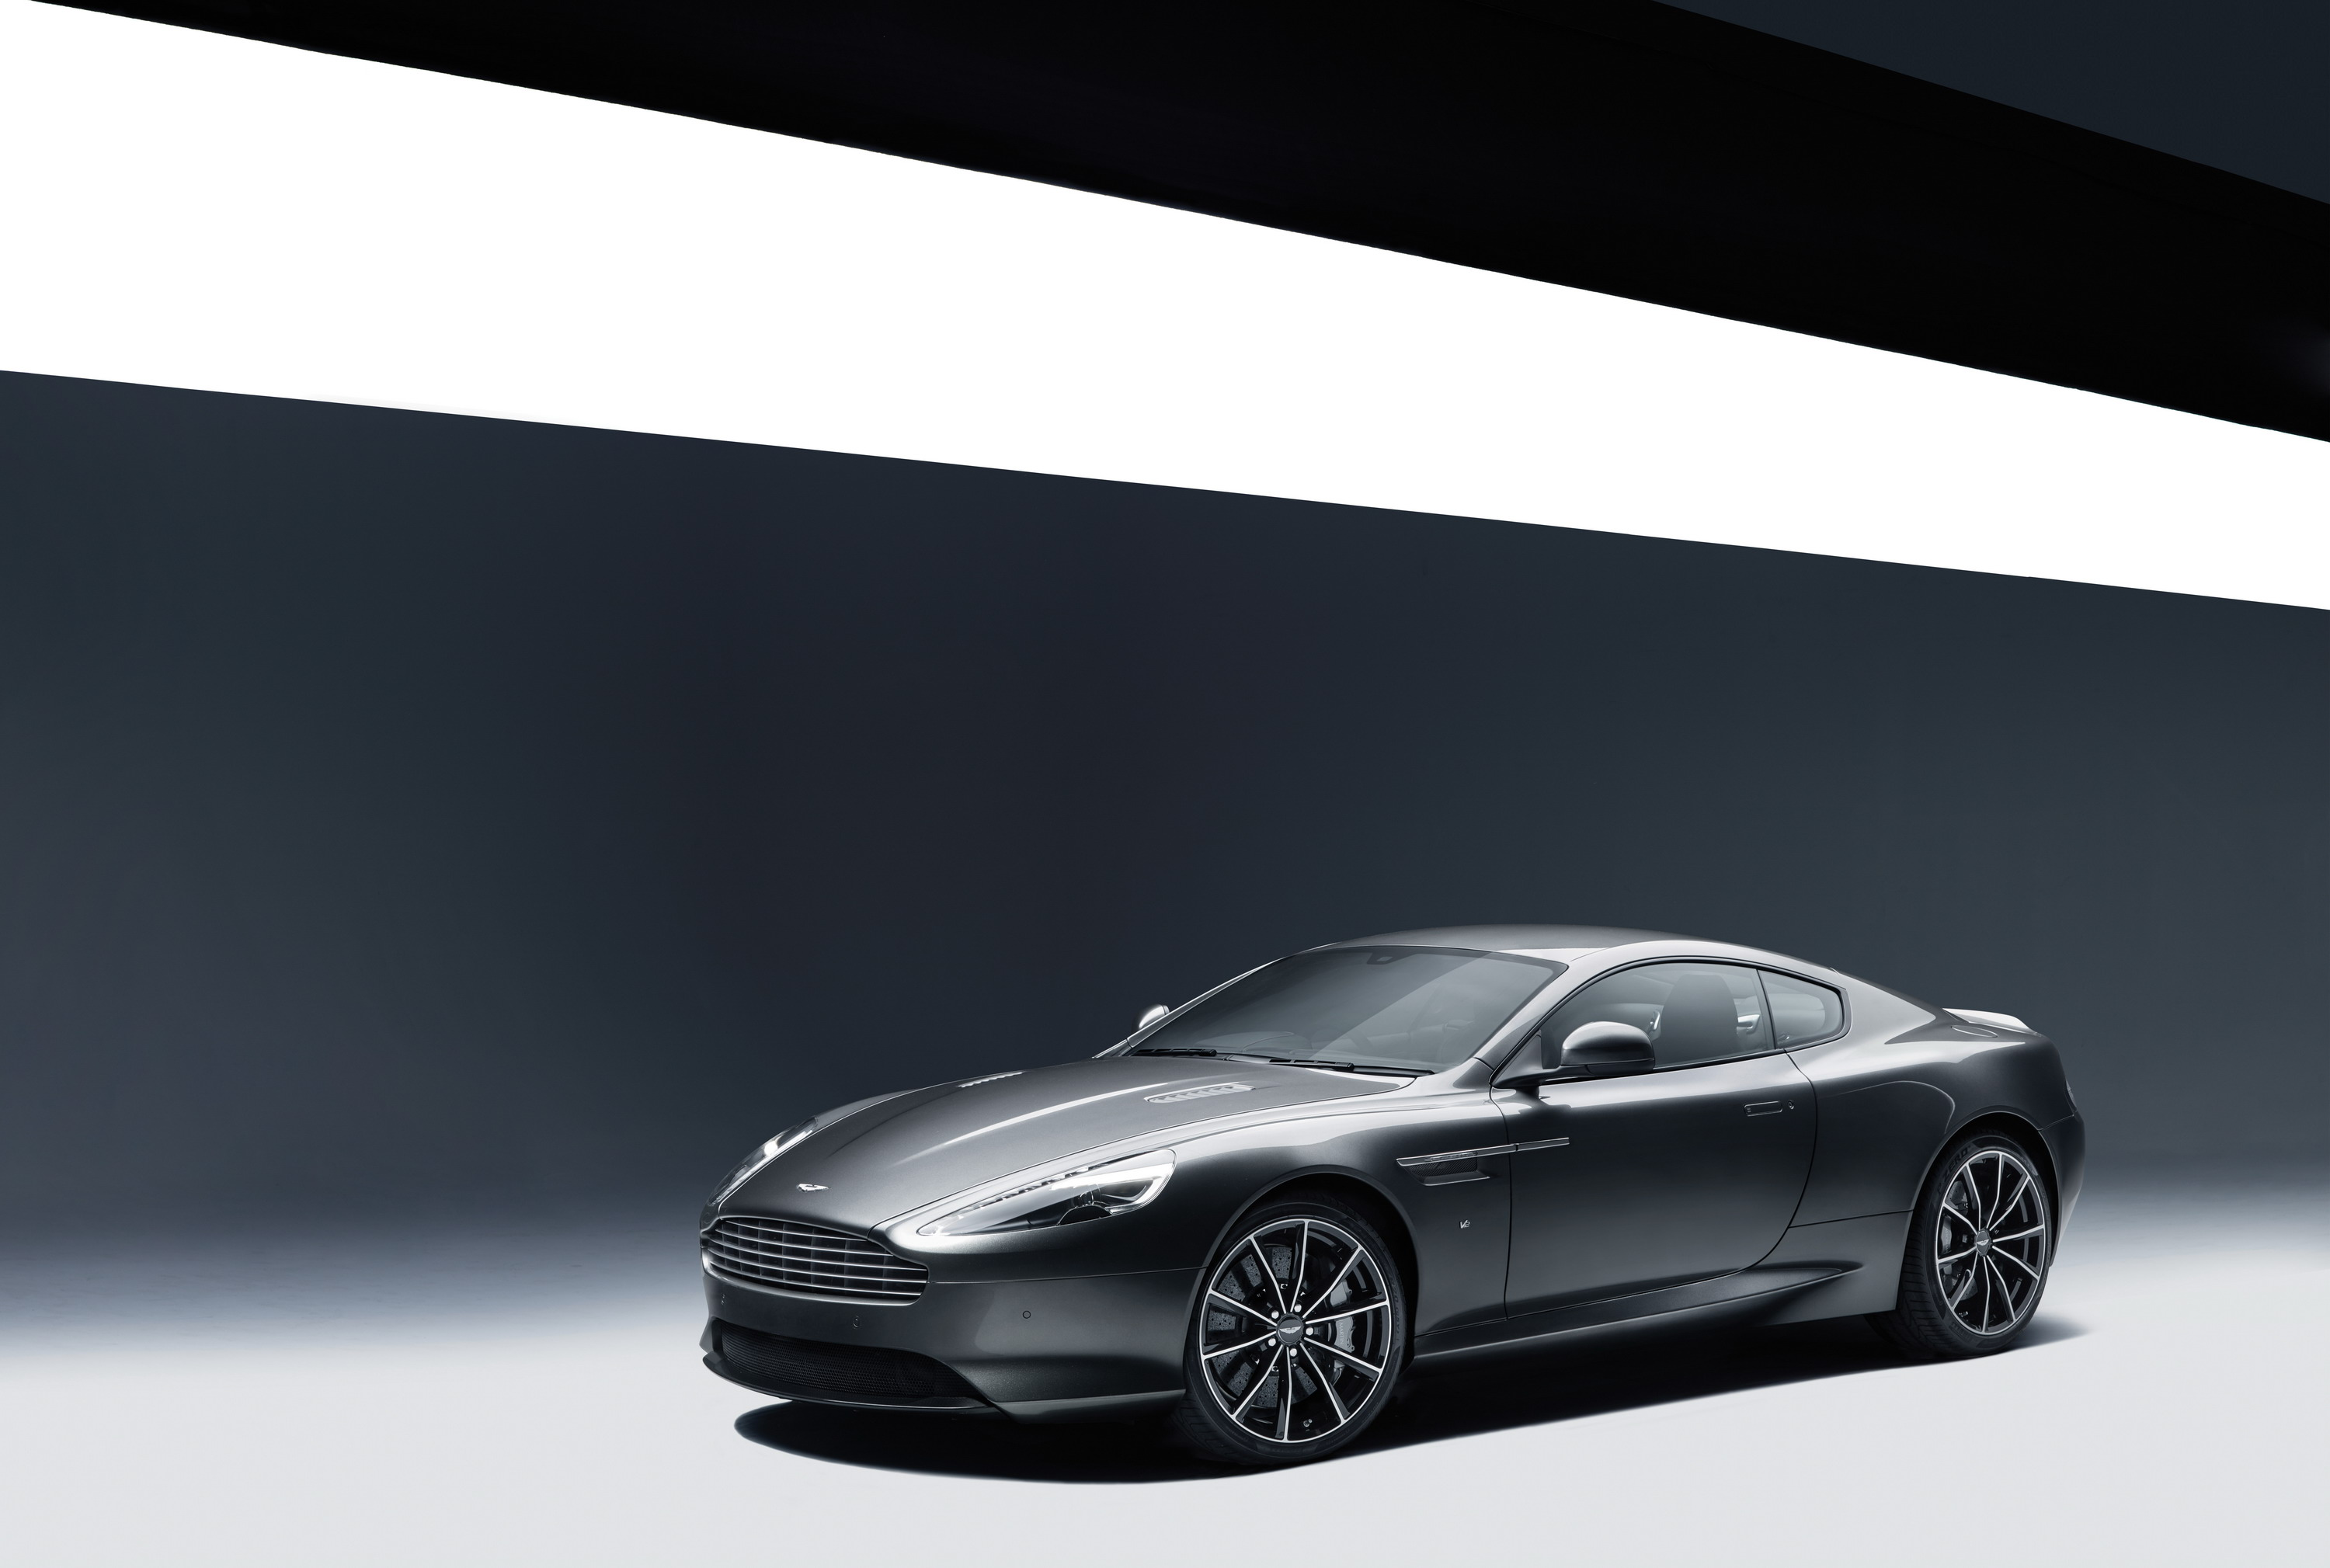 Image result for aston martin dbs Super cars are only made in